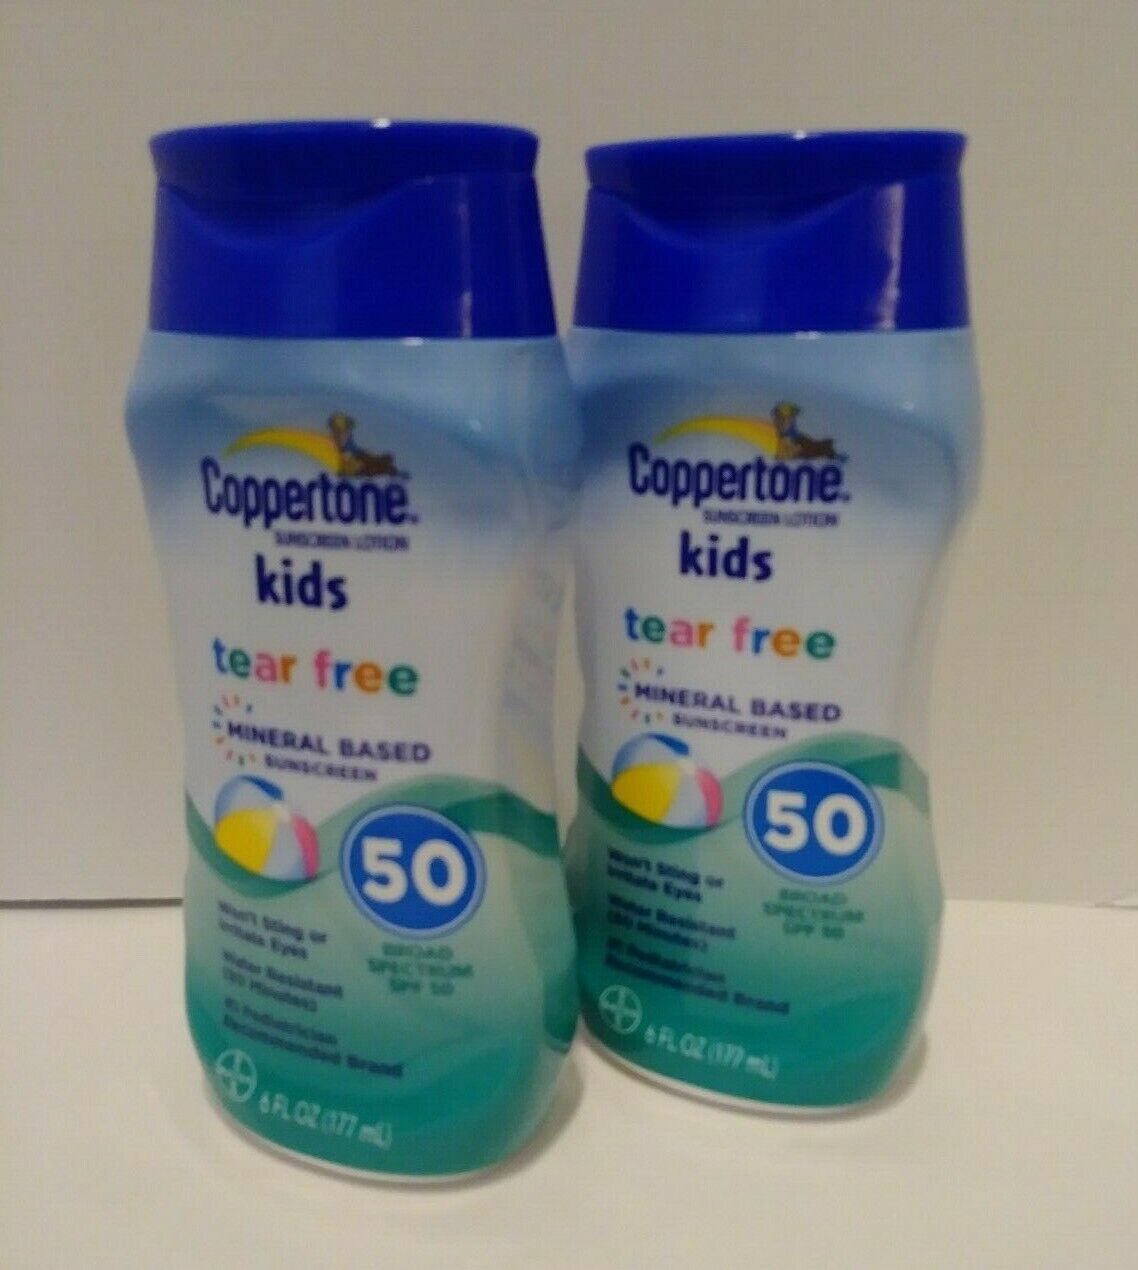 TWO PK Coppertone Kids Tear Free Mineral Based SPF 50 Sunscr